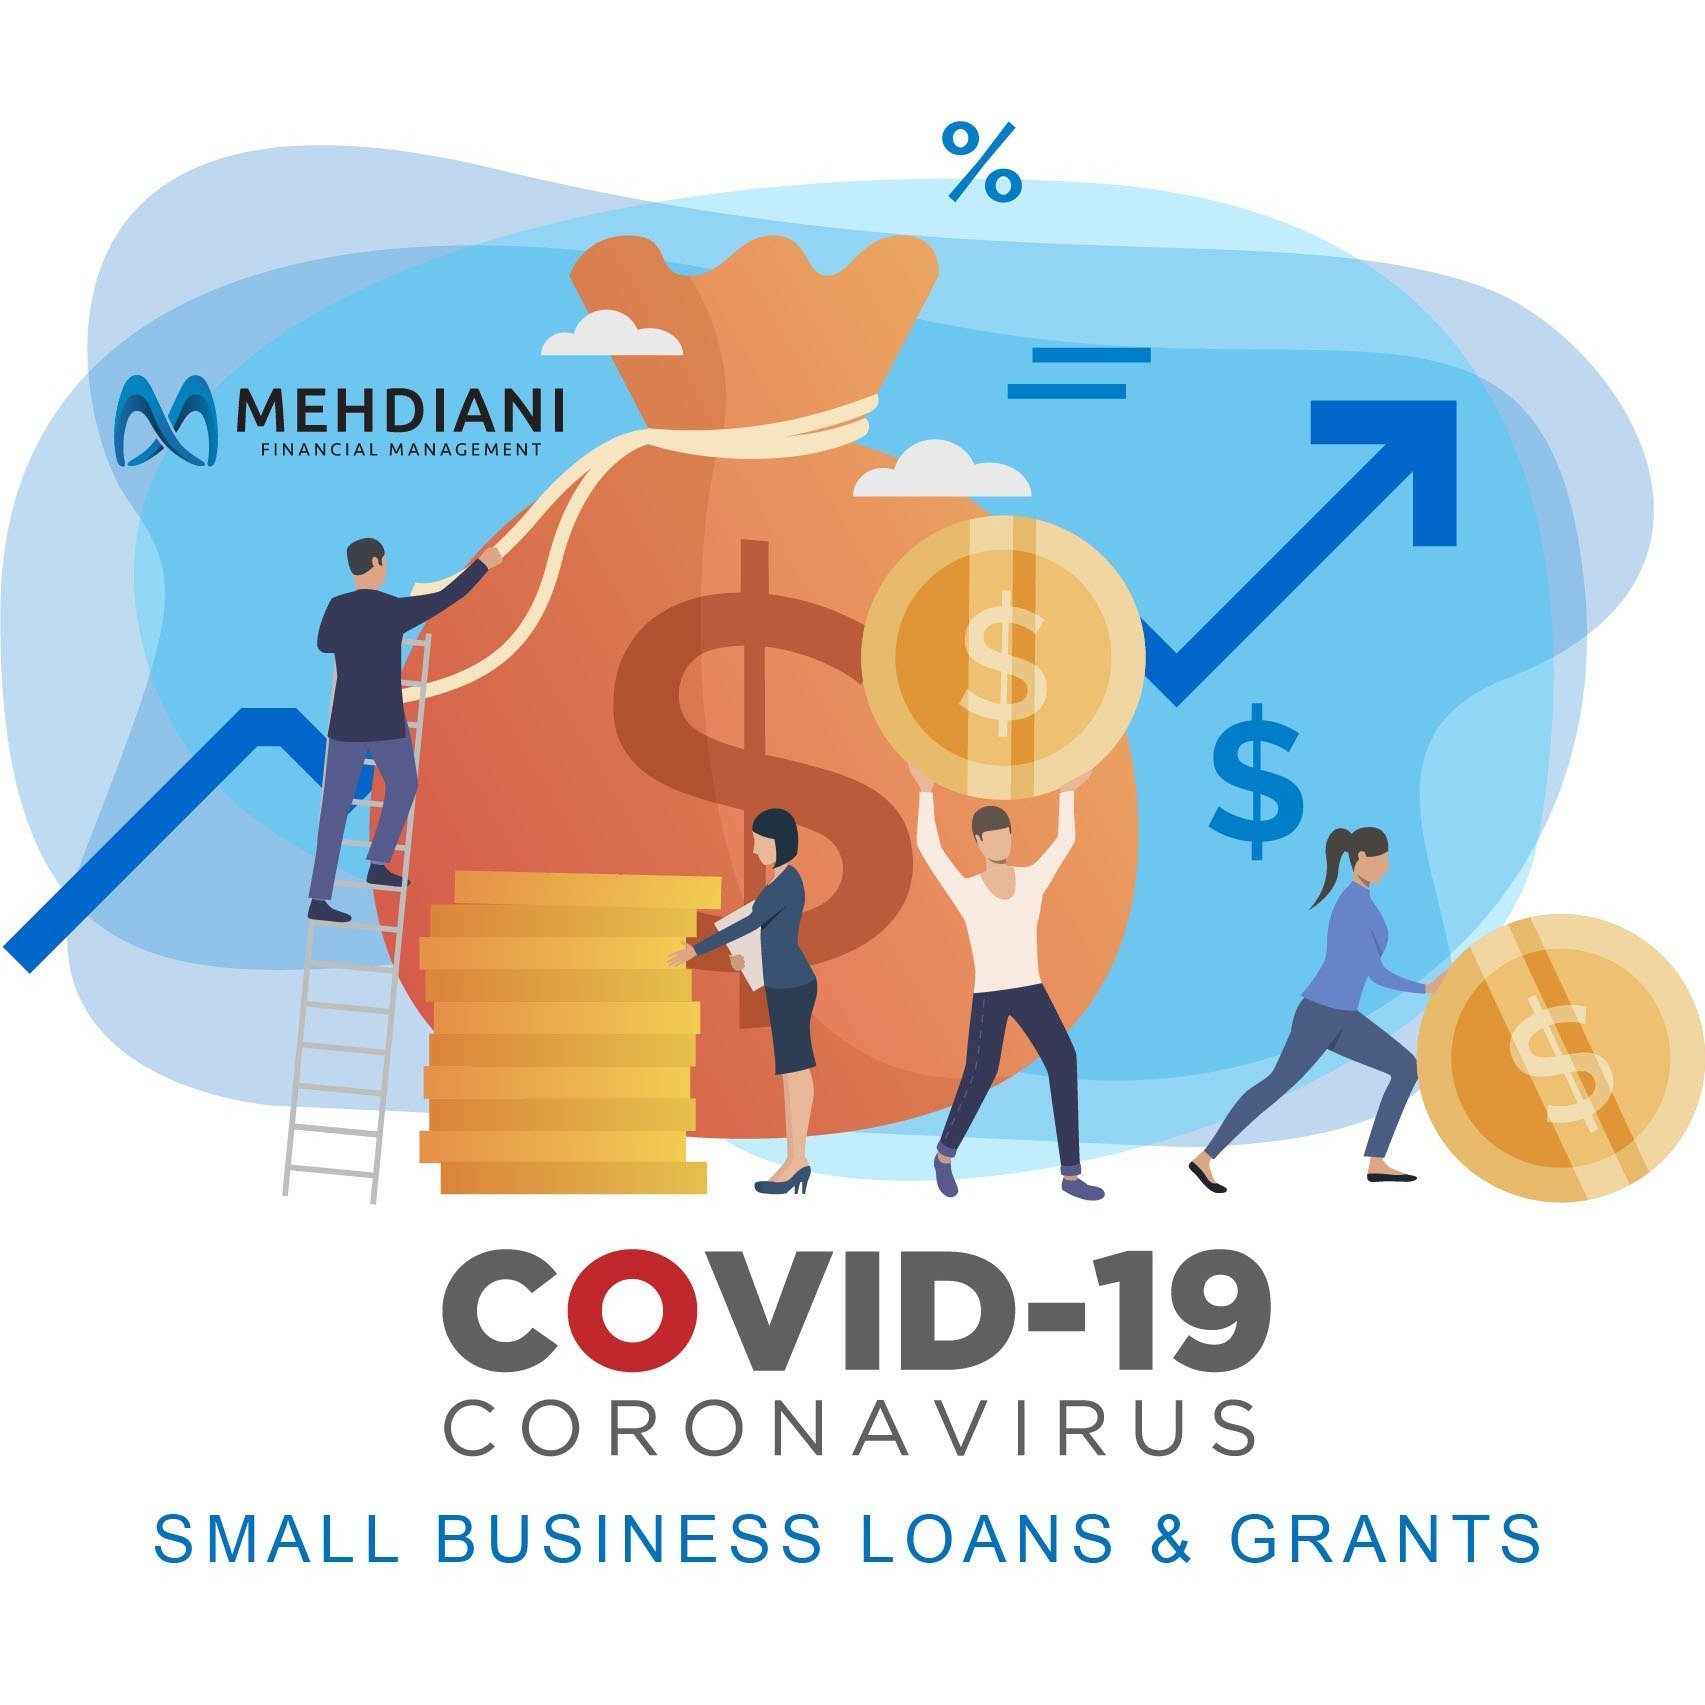 FREE LIVE WEBCAST: Coronavirus (COVID-19) Small Business